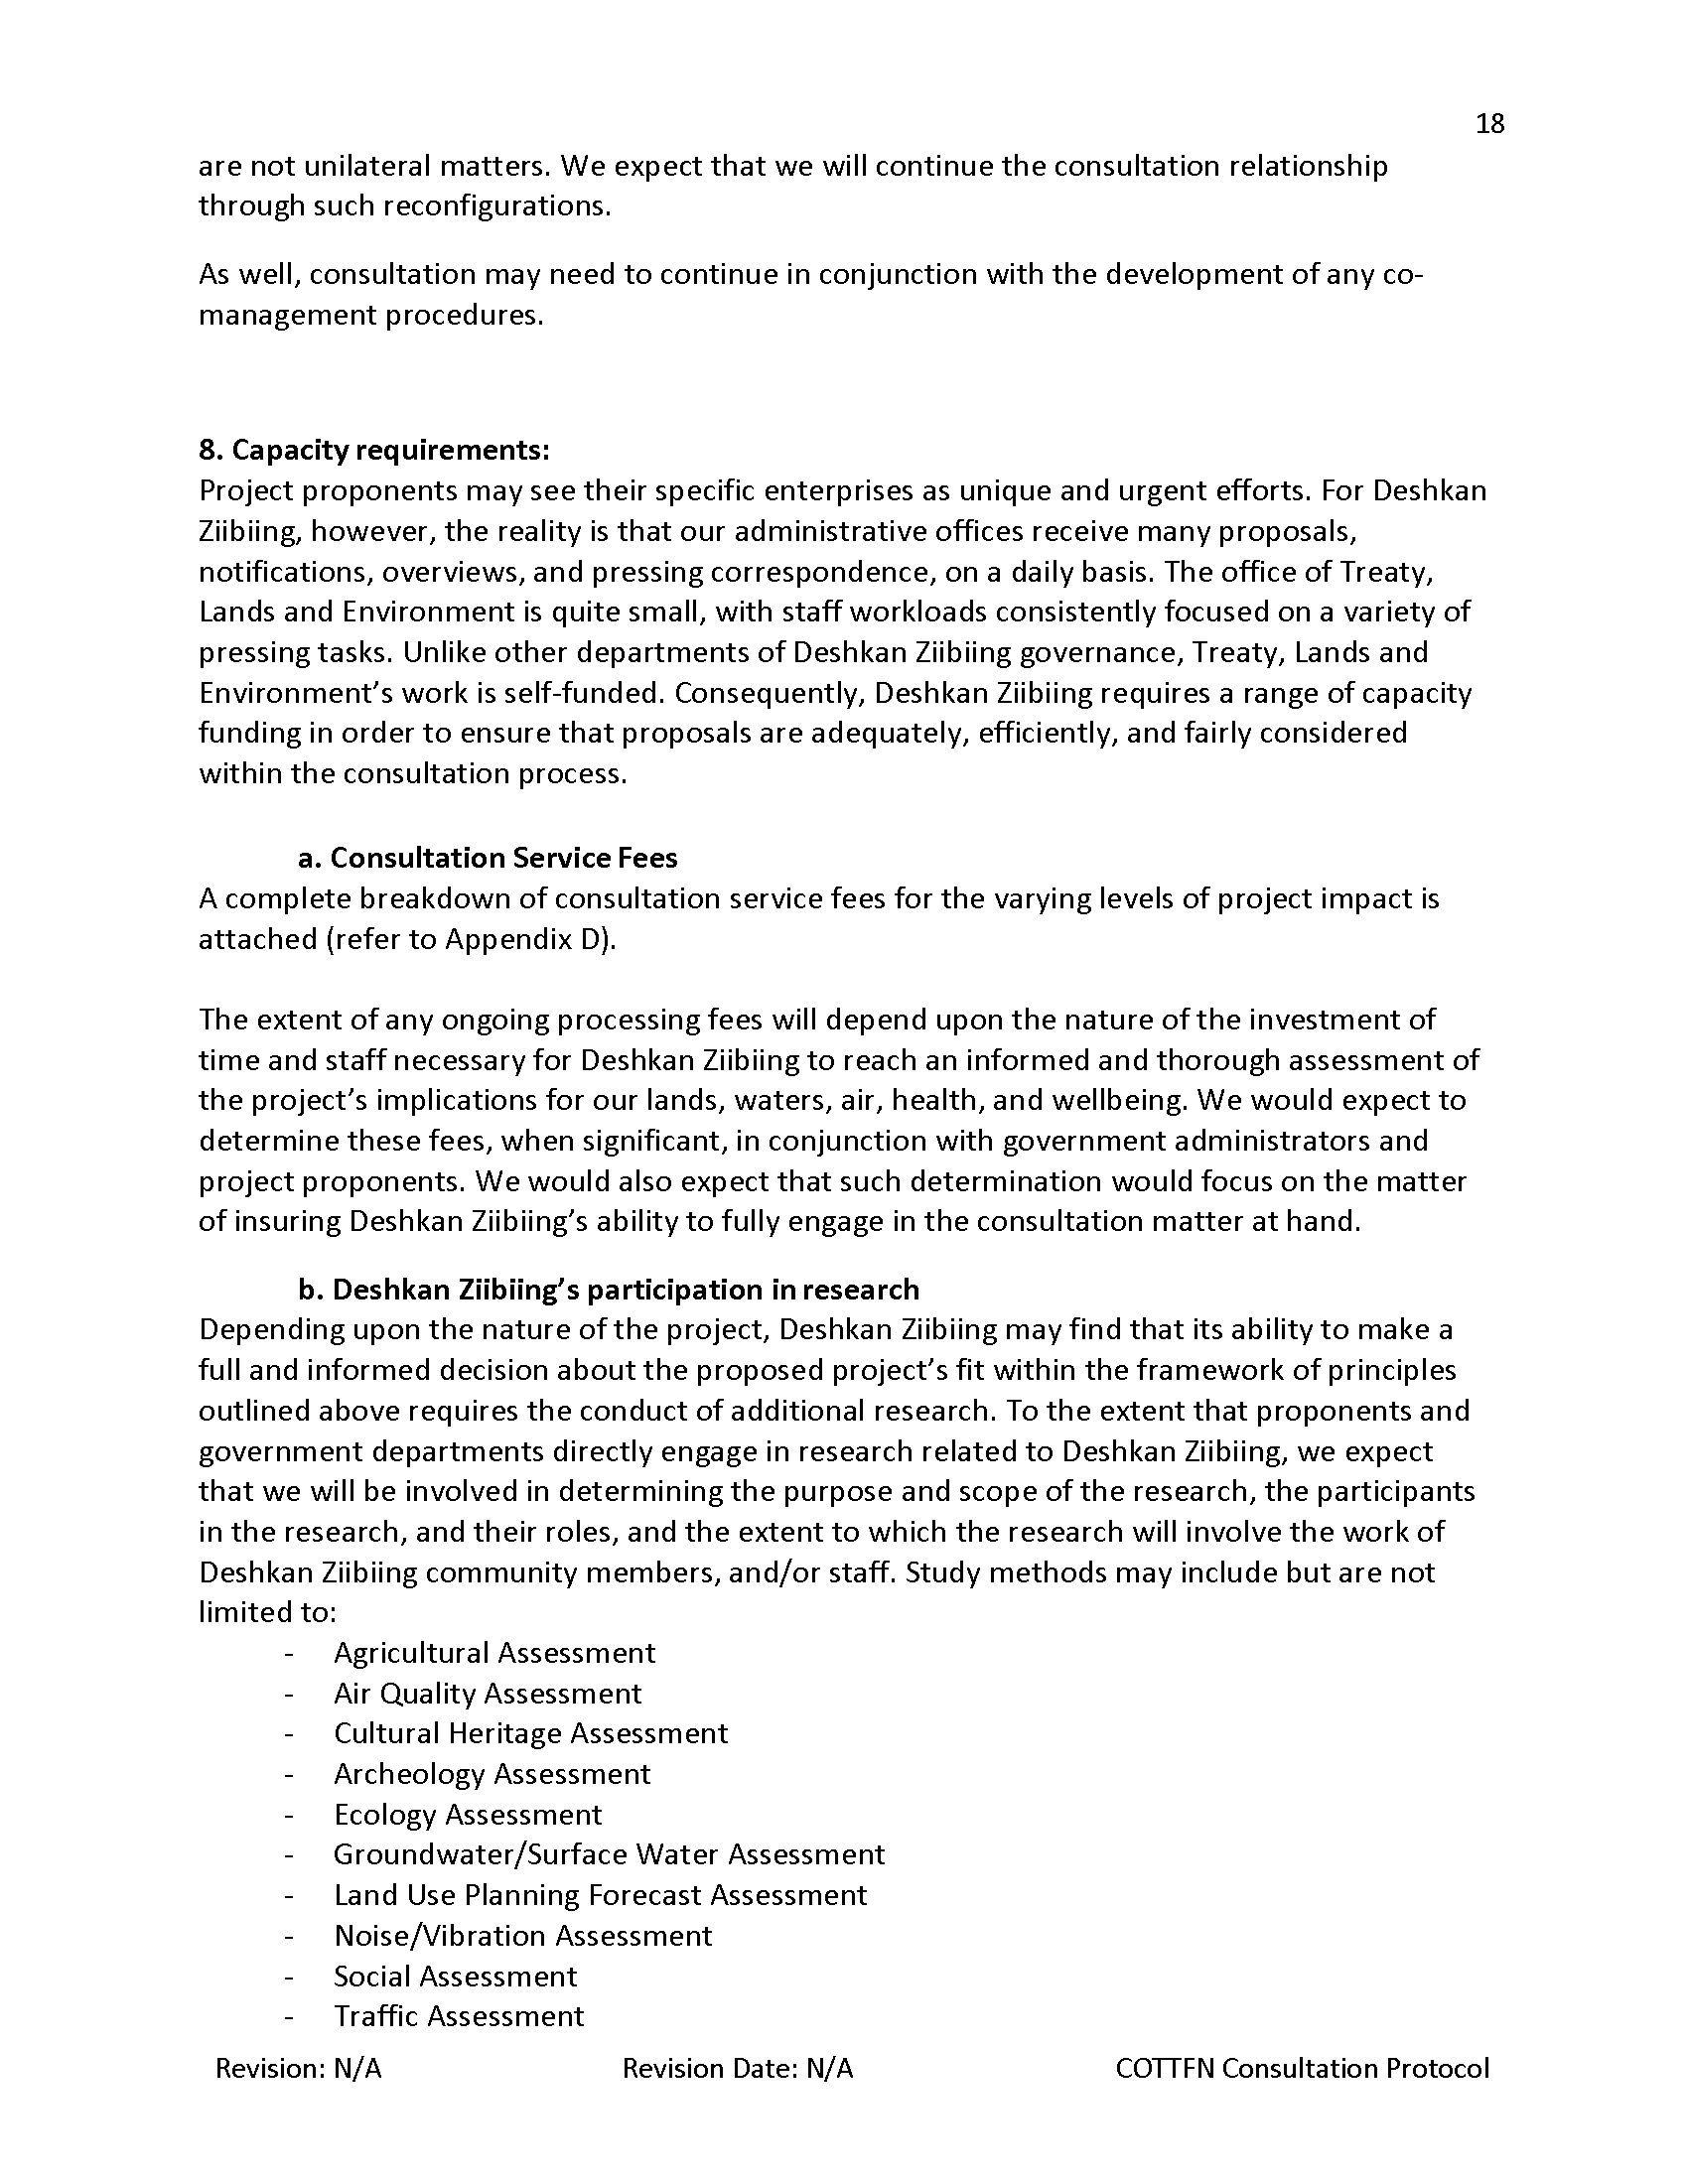 wiindmaagewin-consultation-protocol-03-17_page_18